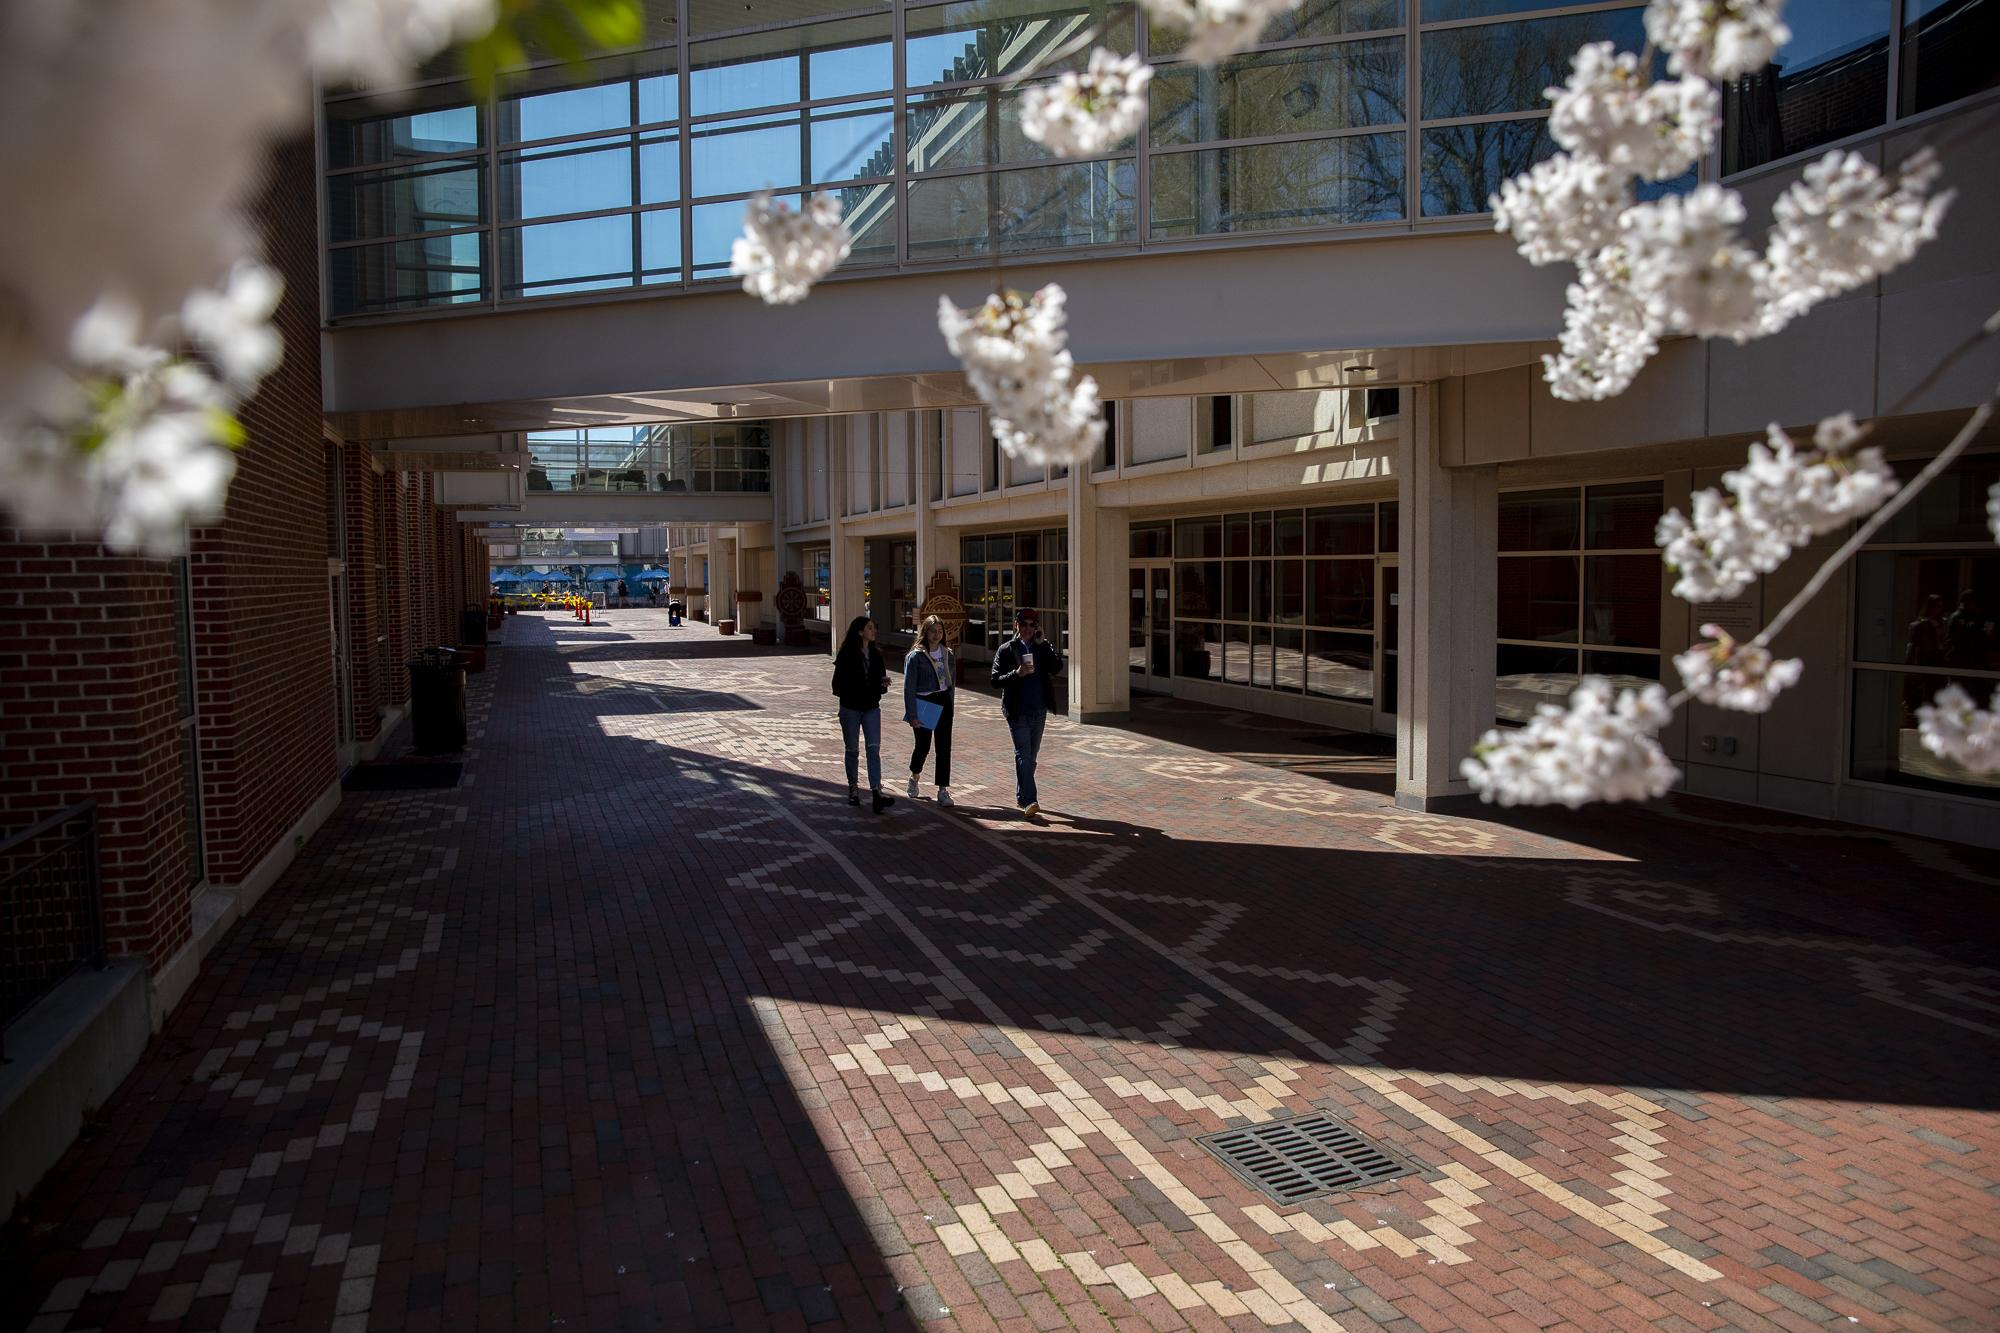 The Gift Plaza